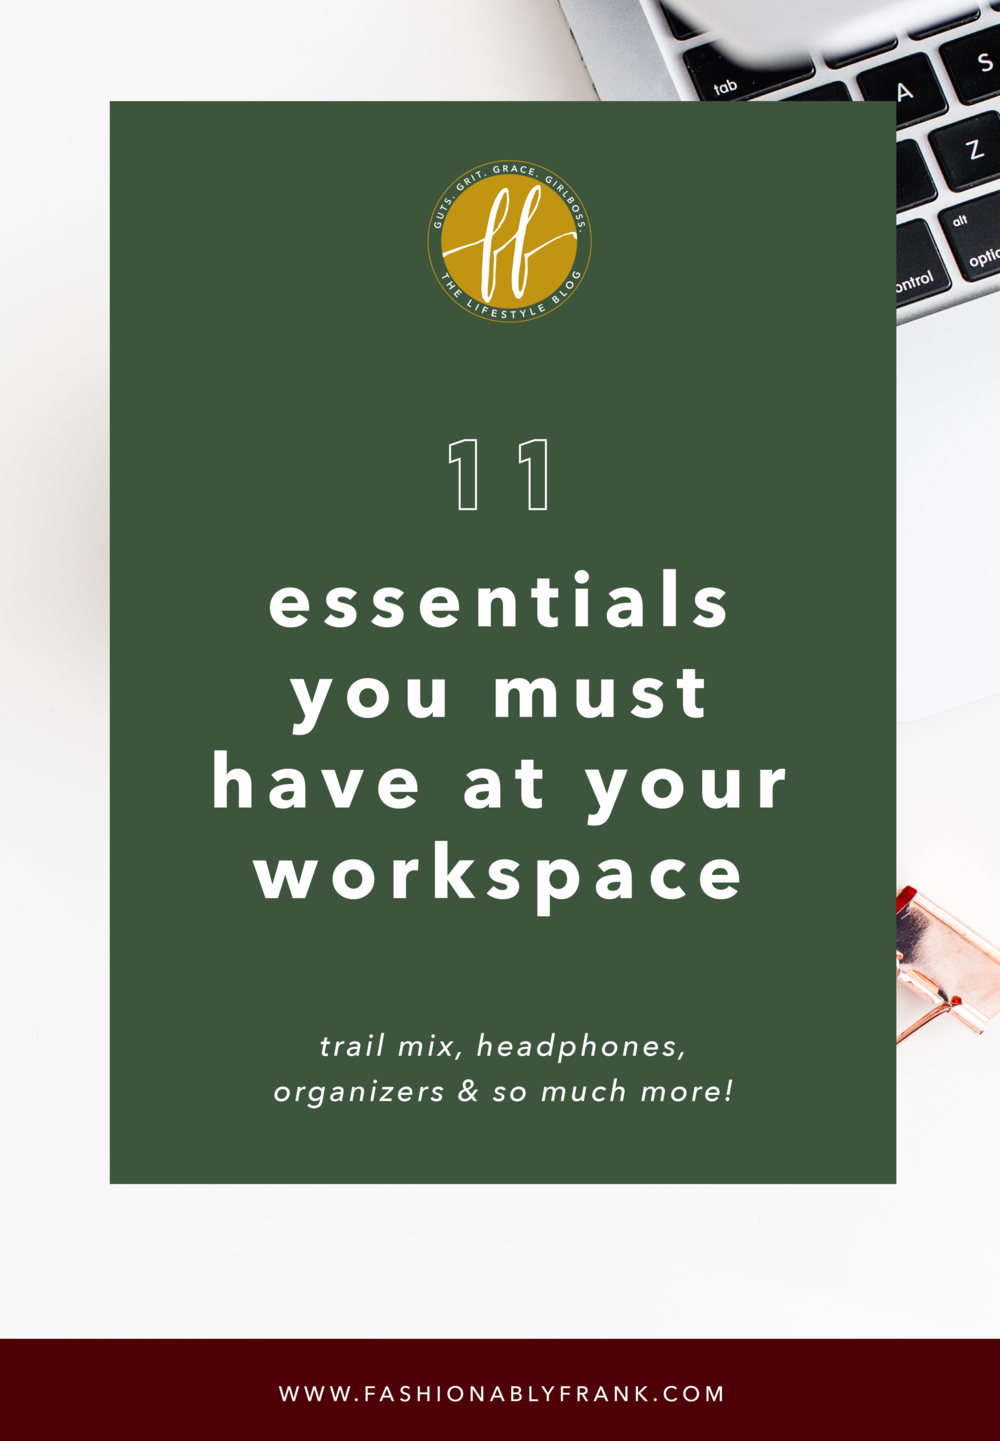 Things You Must Have at Your Workspace